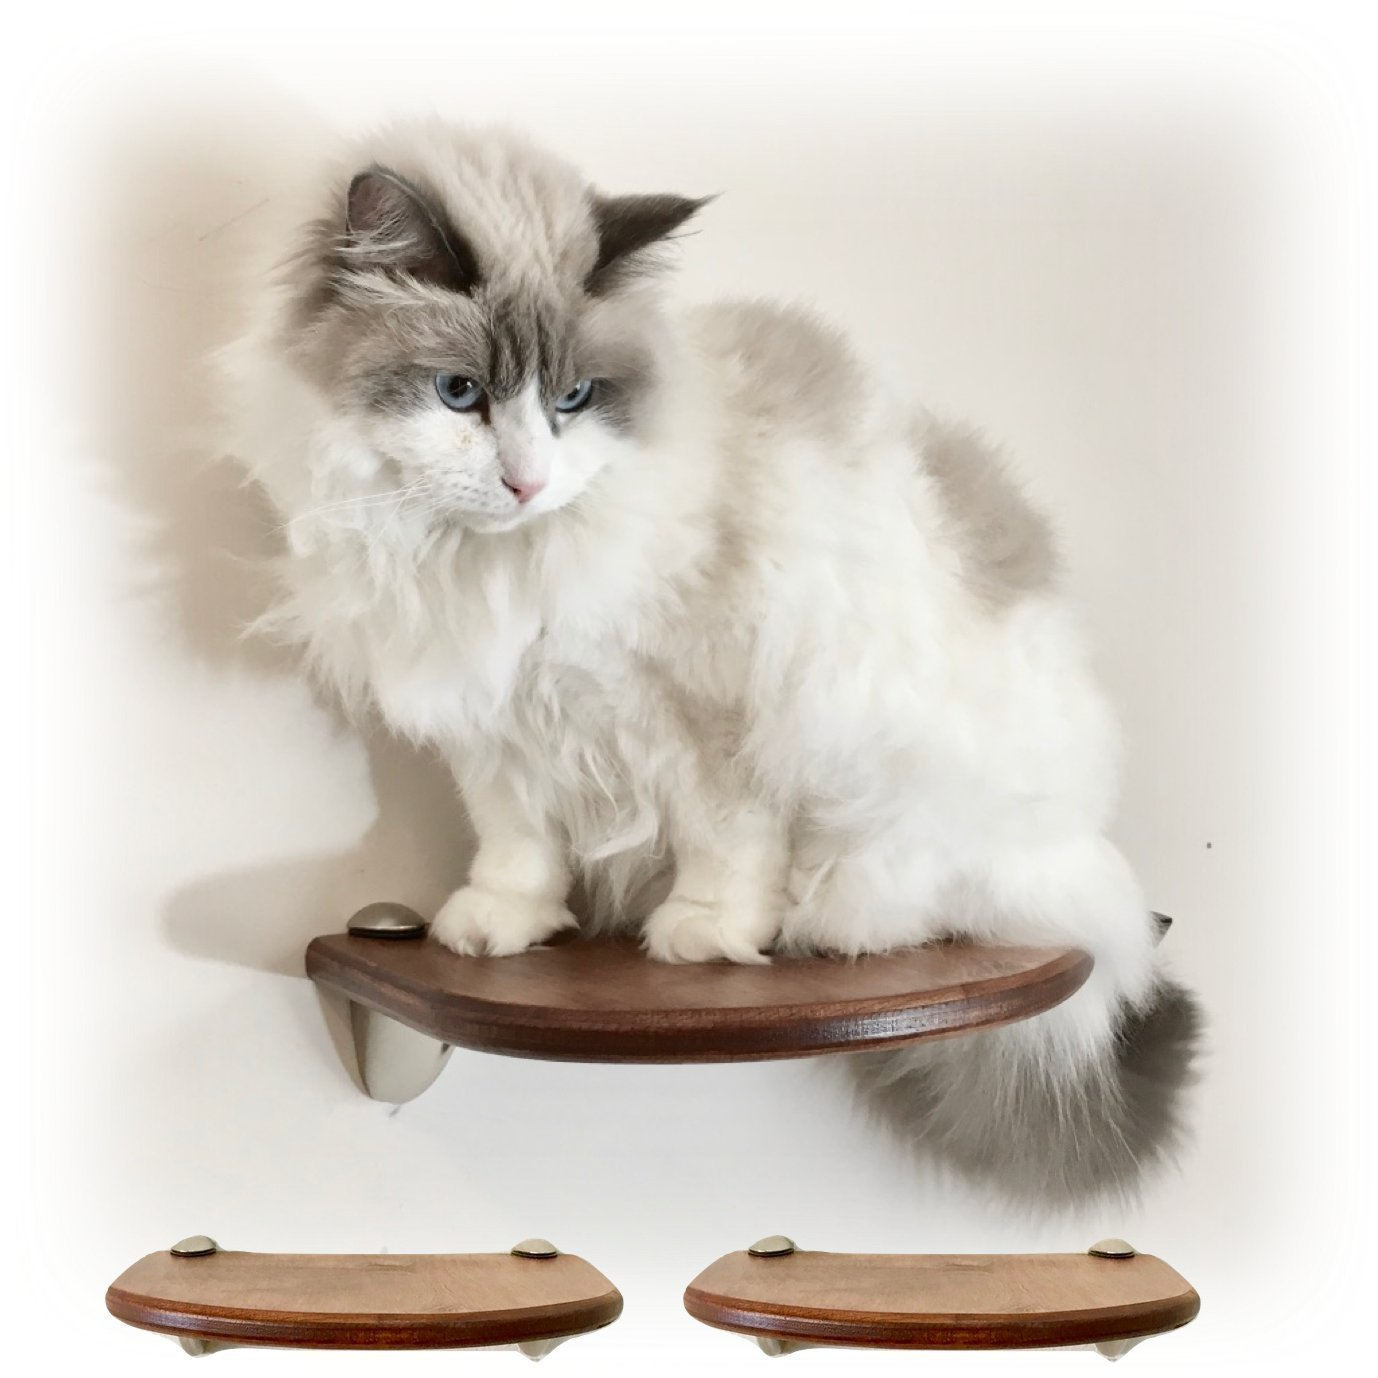 Lunar Floating Cat Wall Shelves - 2pc shelf set by Purrfectly Catastic | Handcrafted cat climbing perch | Space saving wall mounted cat furniture | Choice of wood finish